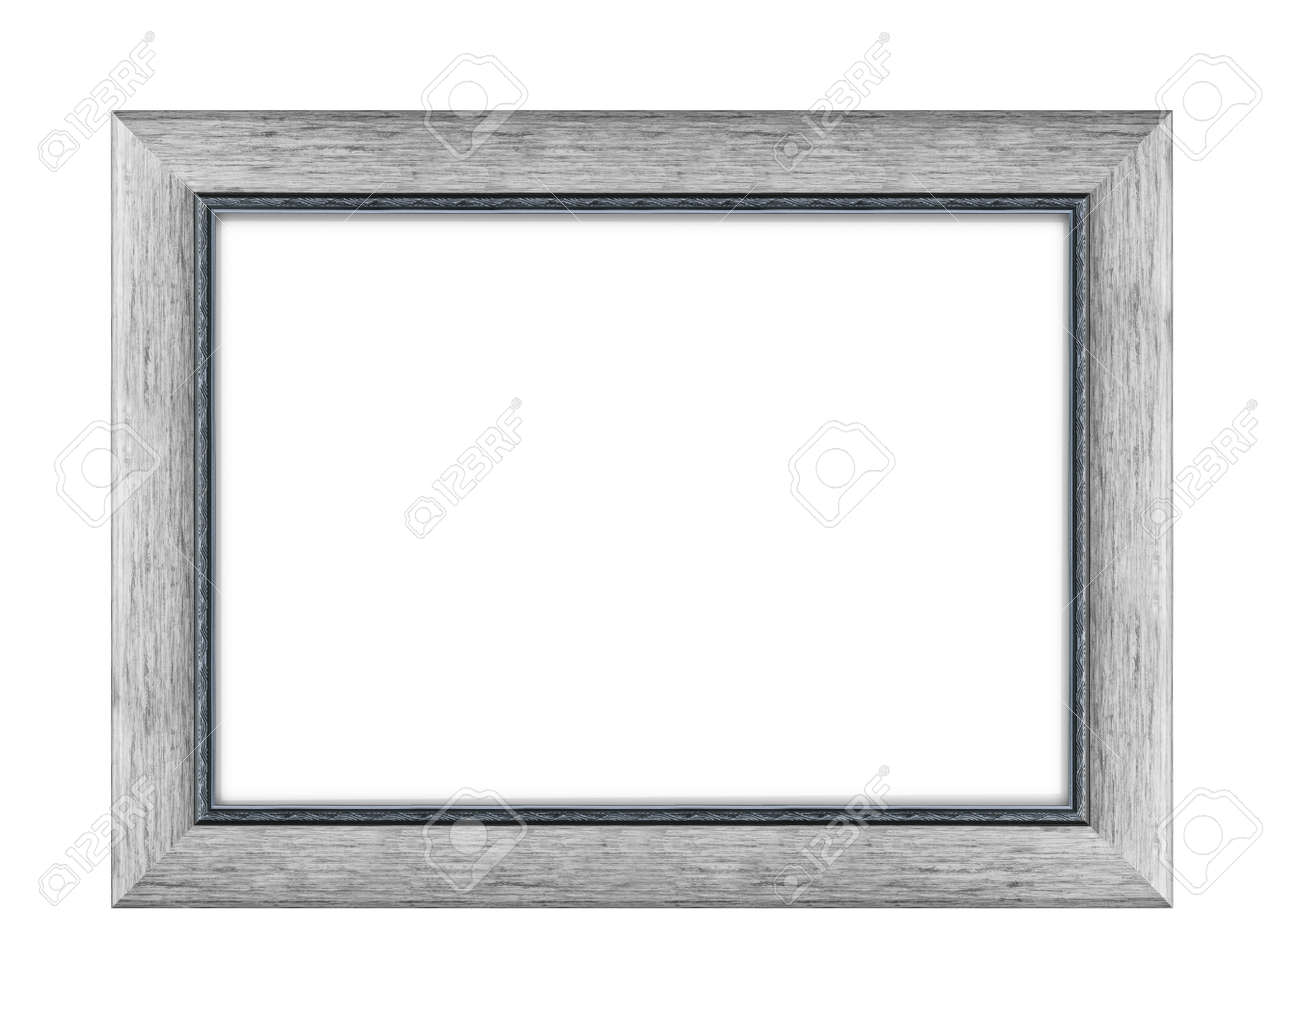 wooden frame for picture or photo, frame for a mirror isolated on white background. With clipping path - 170242736